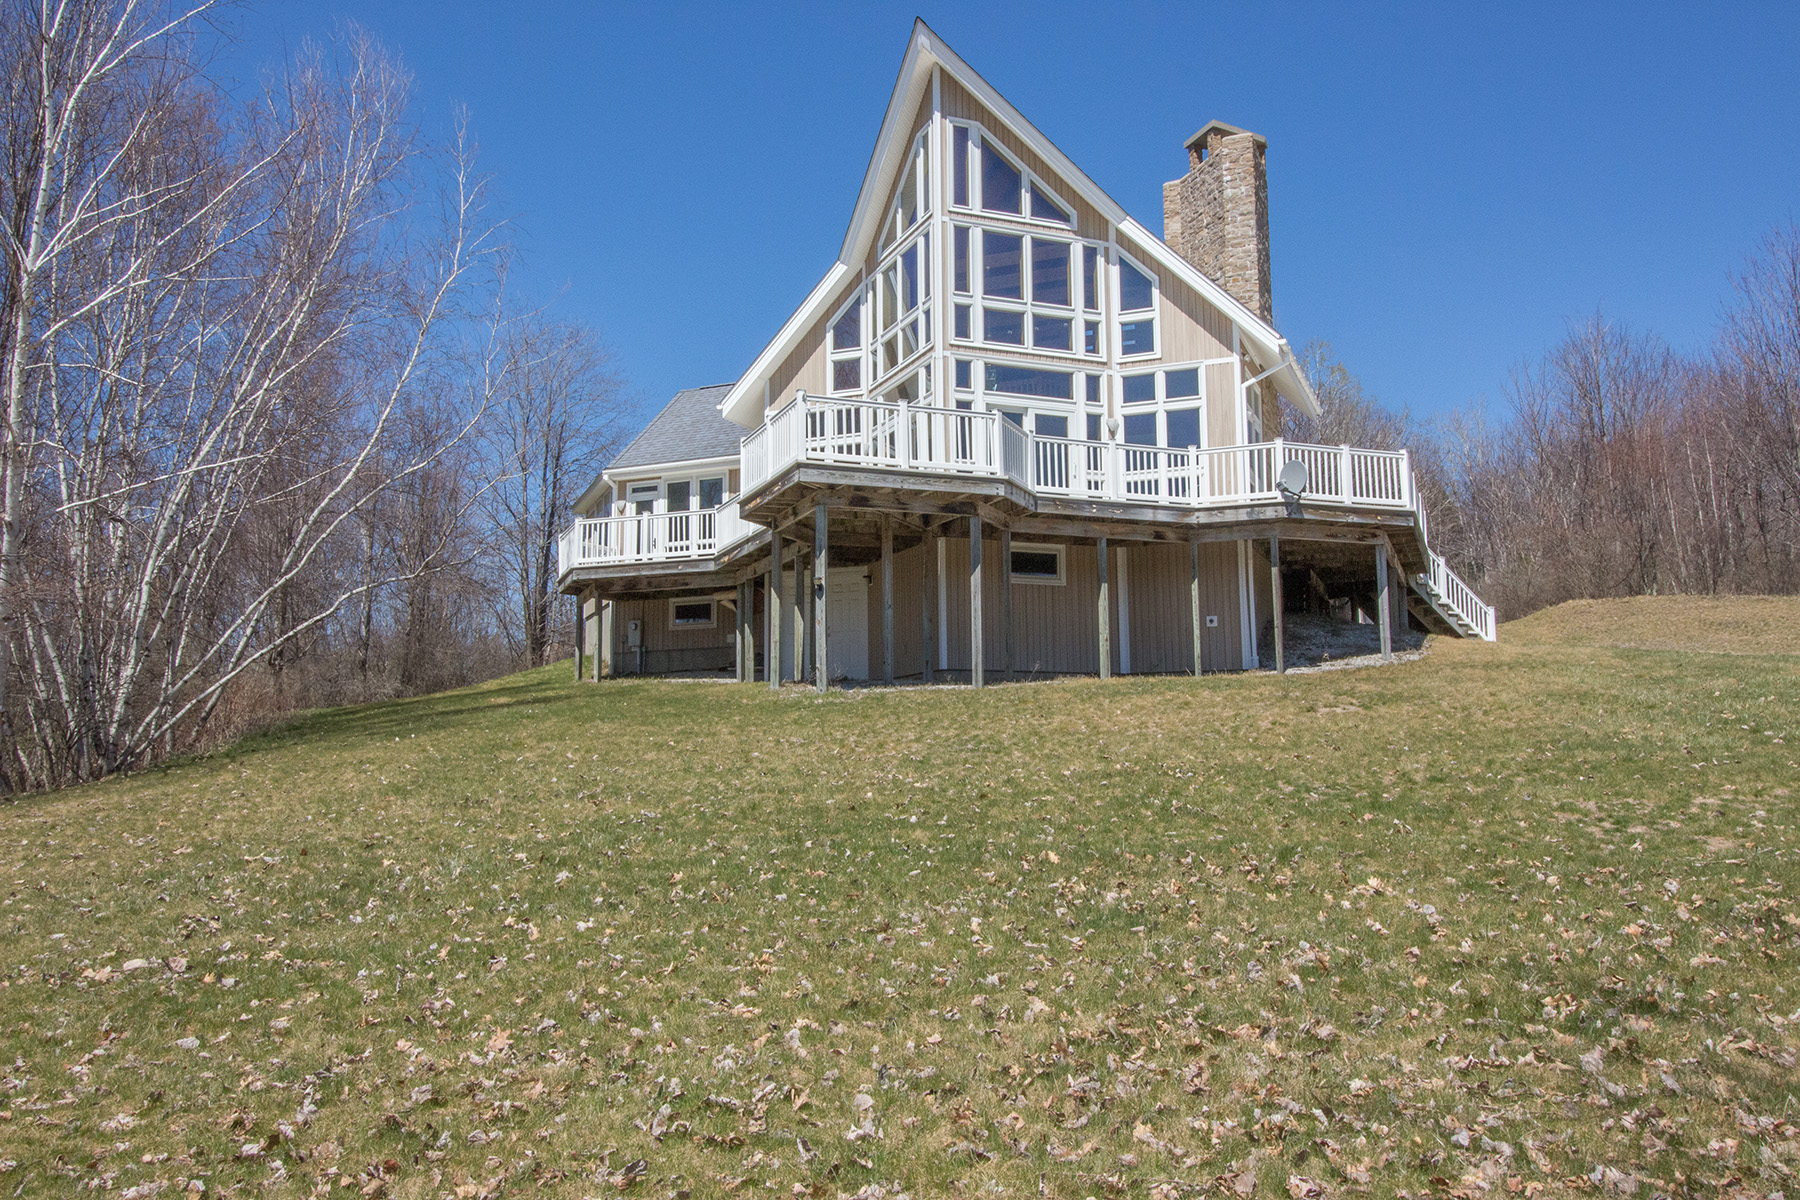 Maison unifamiliale pour l Vente à Elegant Architect-Designed Home 345 Blind Buck Rd Salem, New York 12865 États-Unis